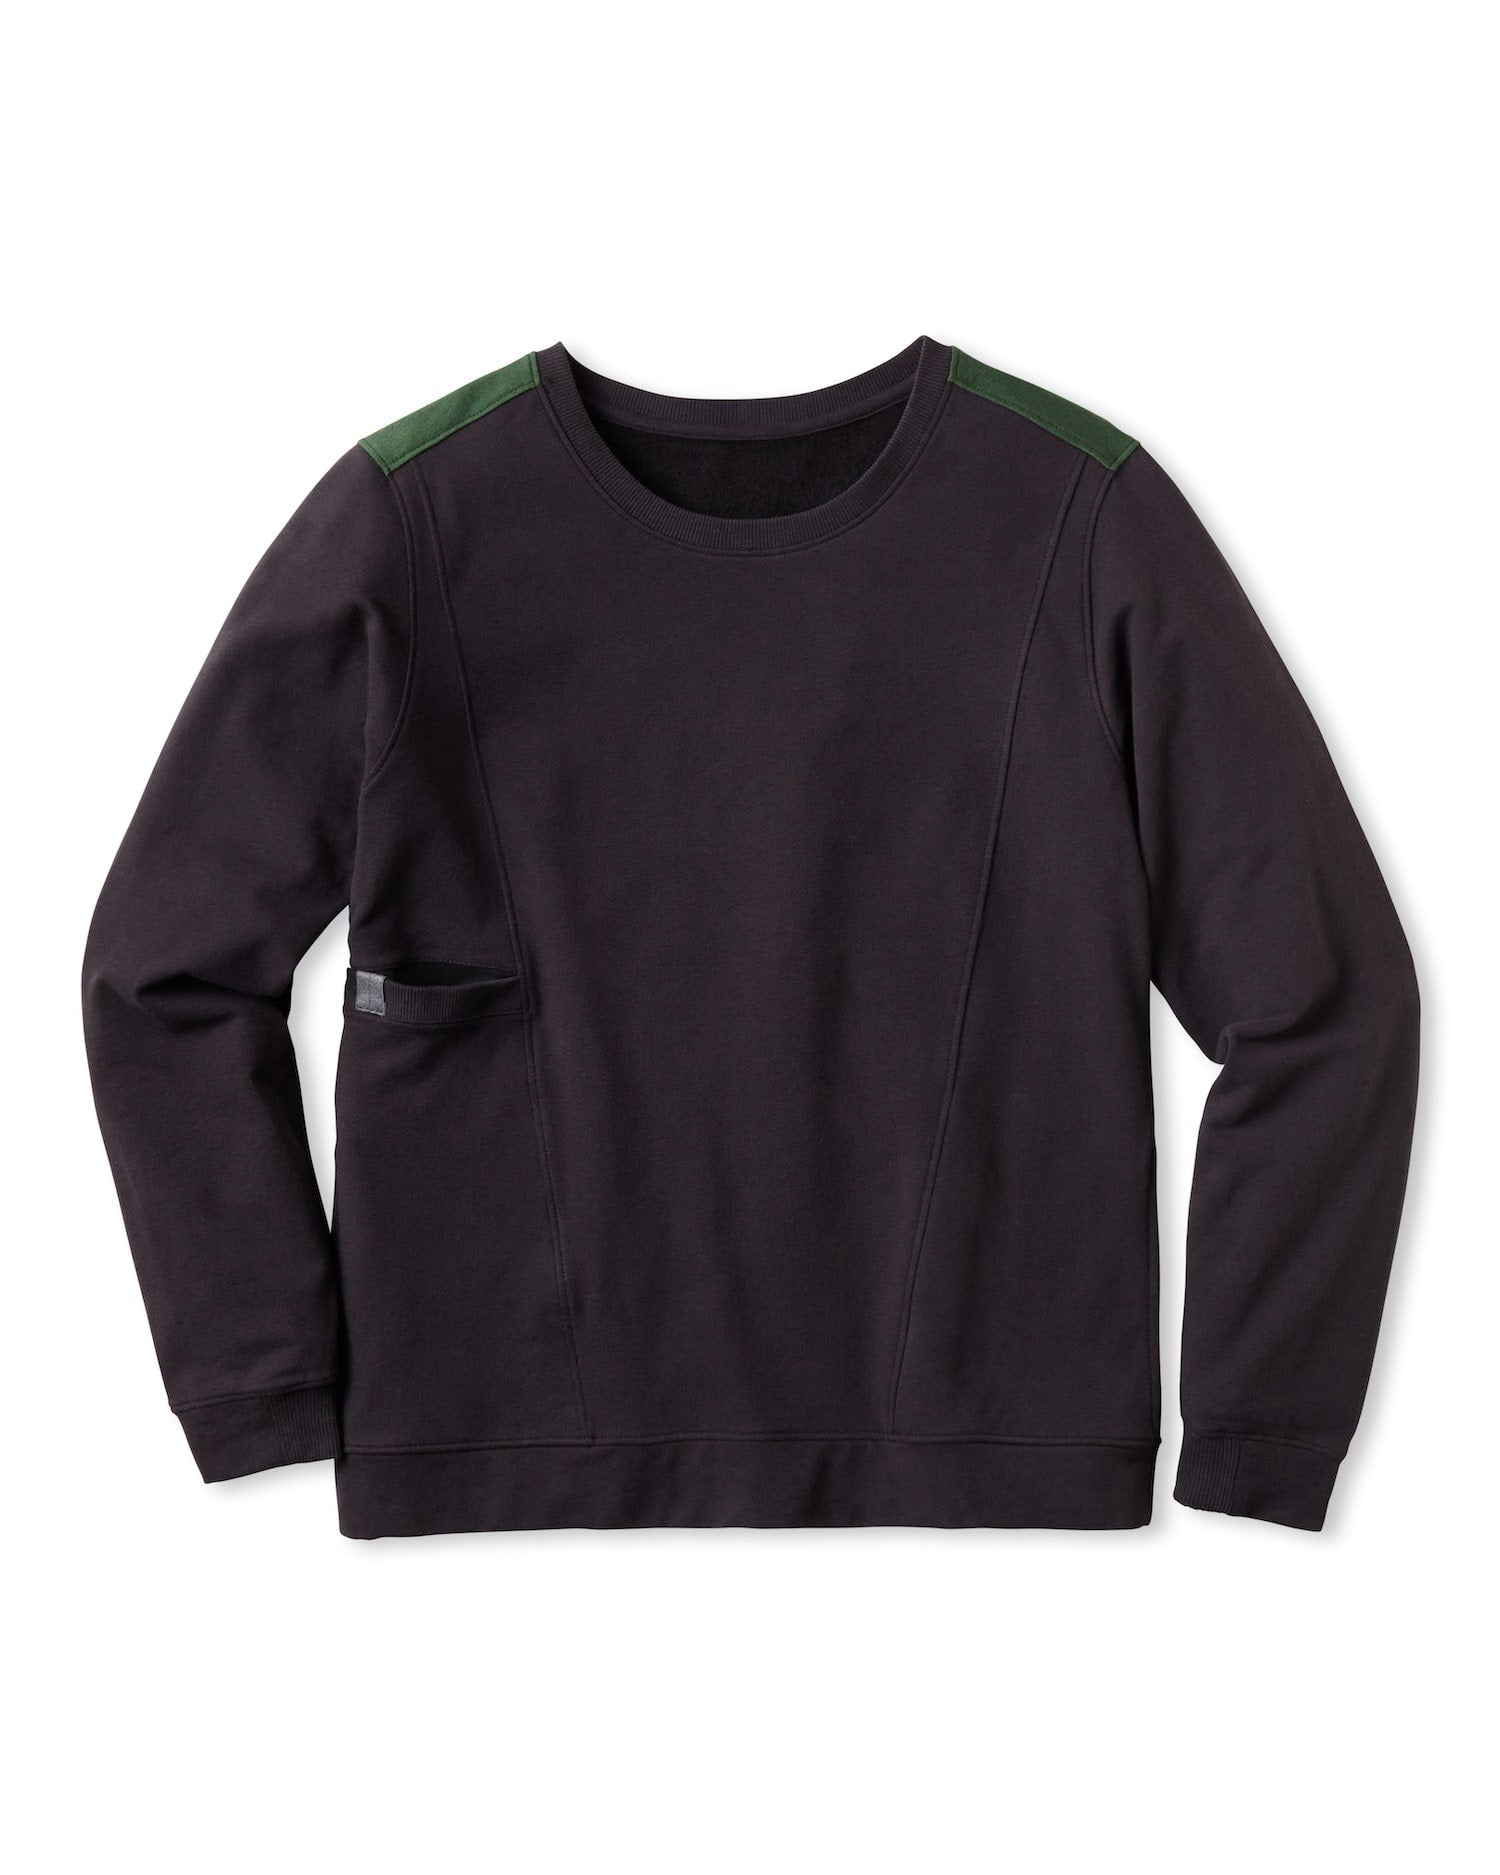 WARM PIMA ALPACA FLEECE SWEATSHIRT